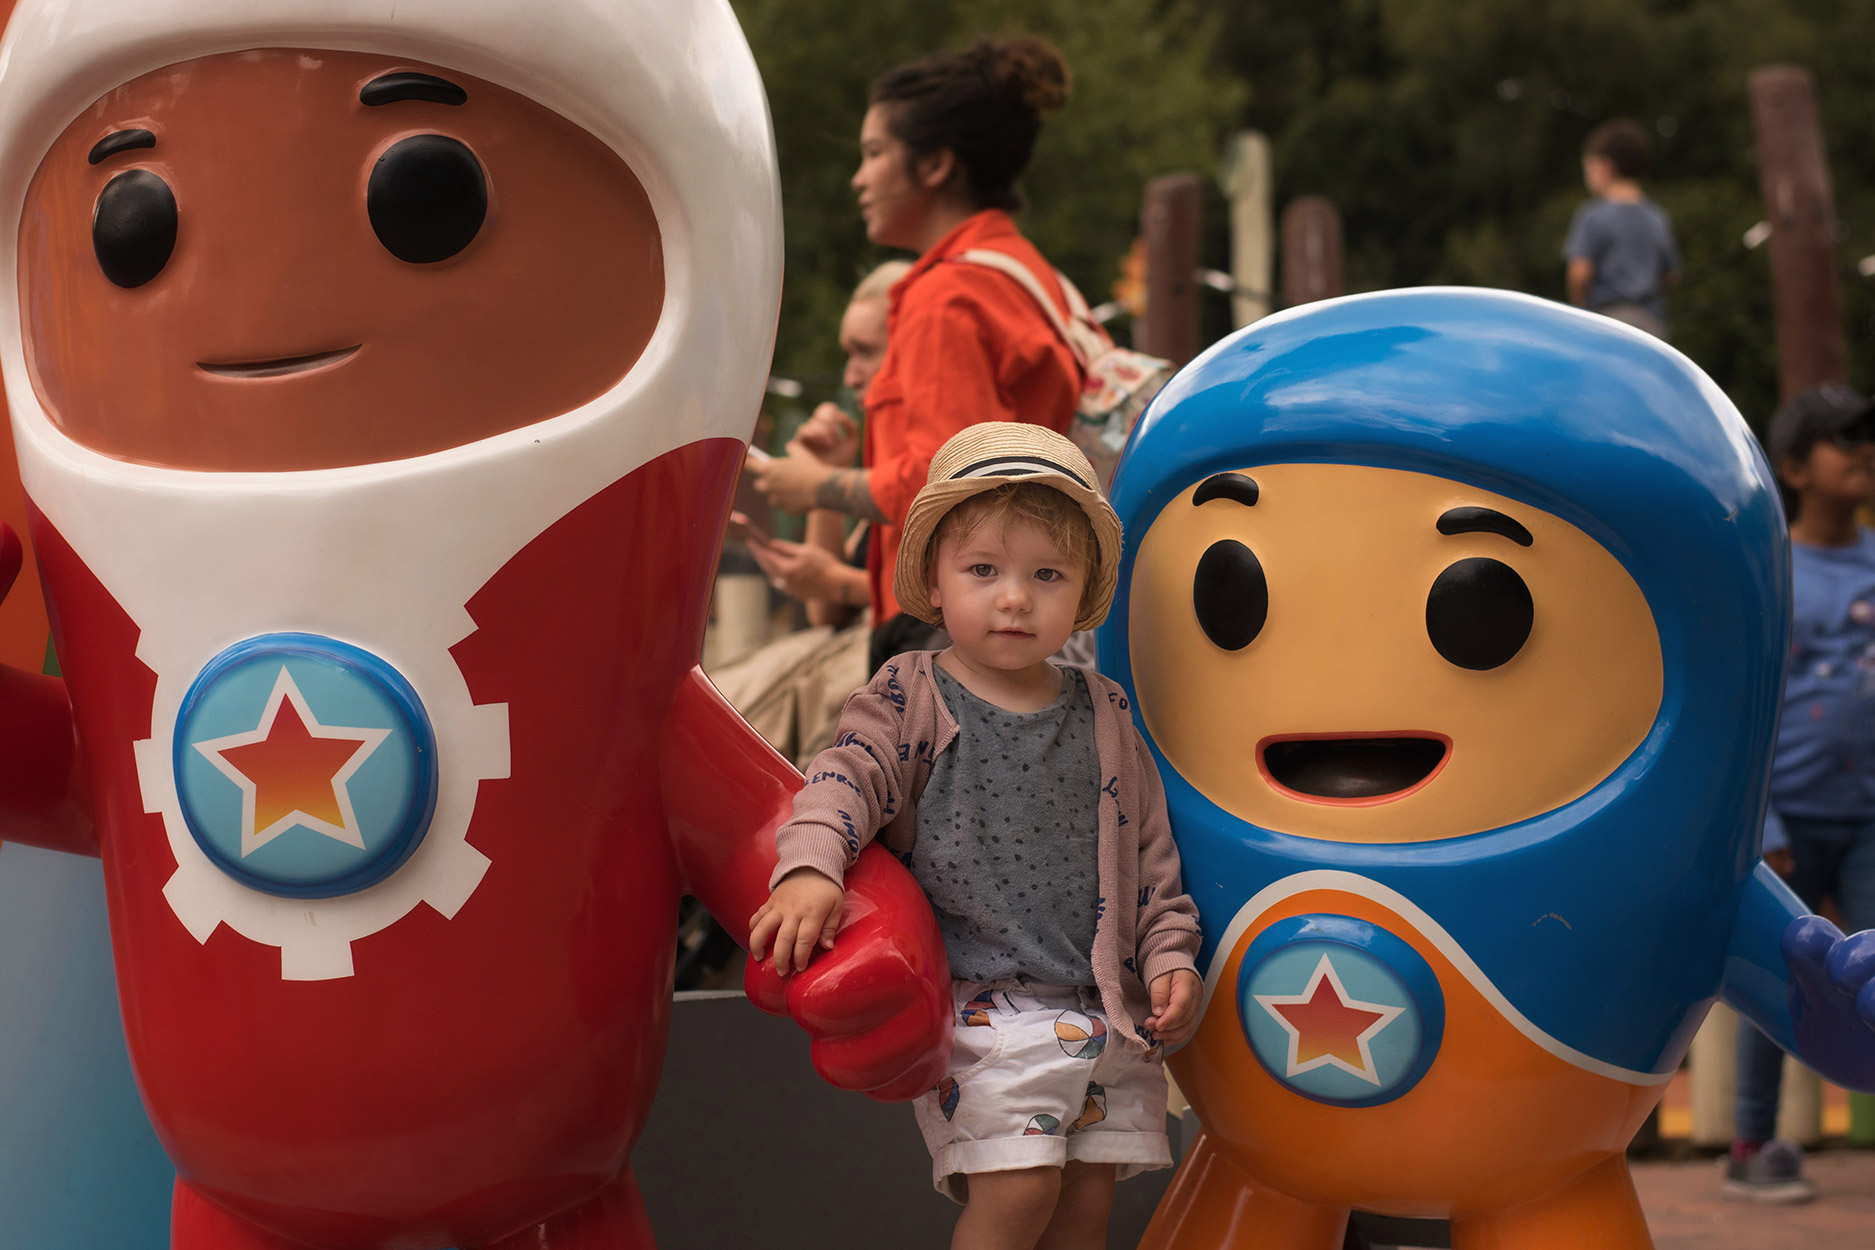 Toddler wearing Bobo Choses and Maed for Mini posing with the Go-Jetters in CBeebies Land, Alton Towers, Stoke-on-Trent